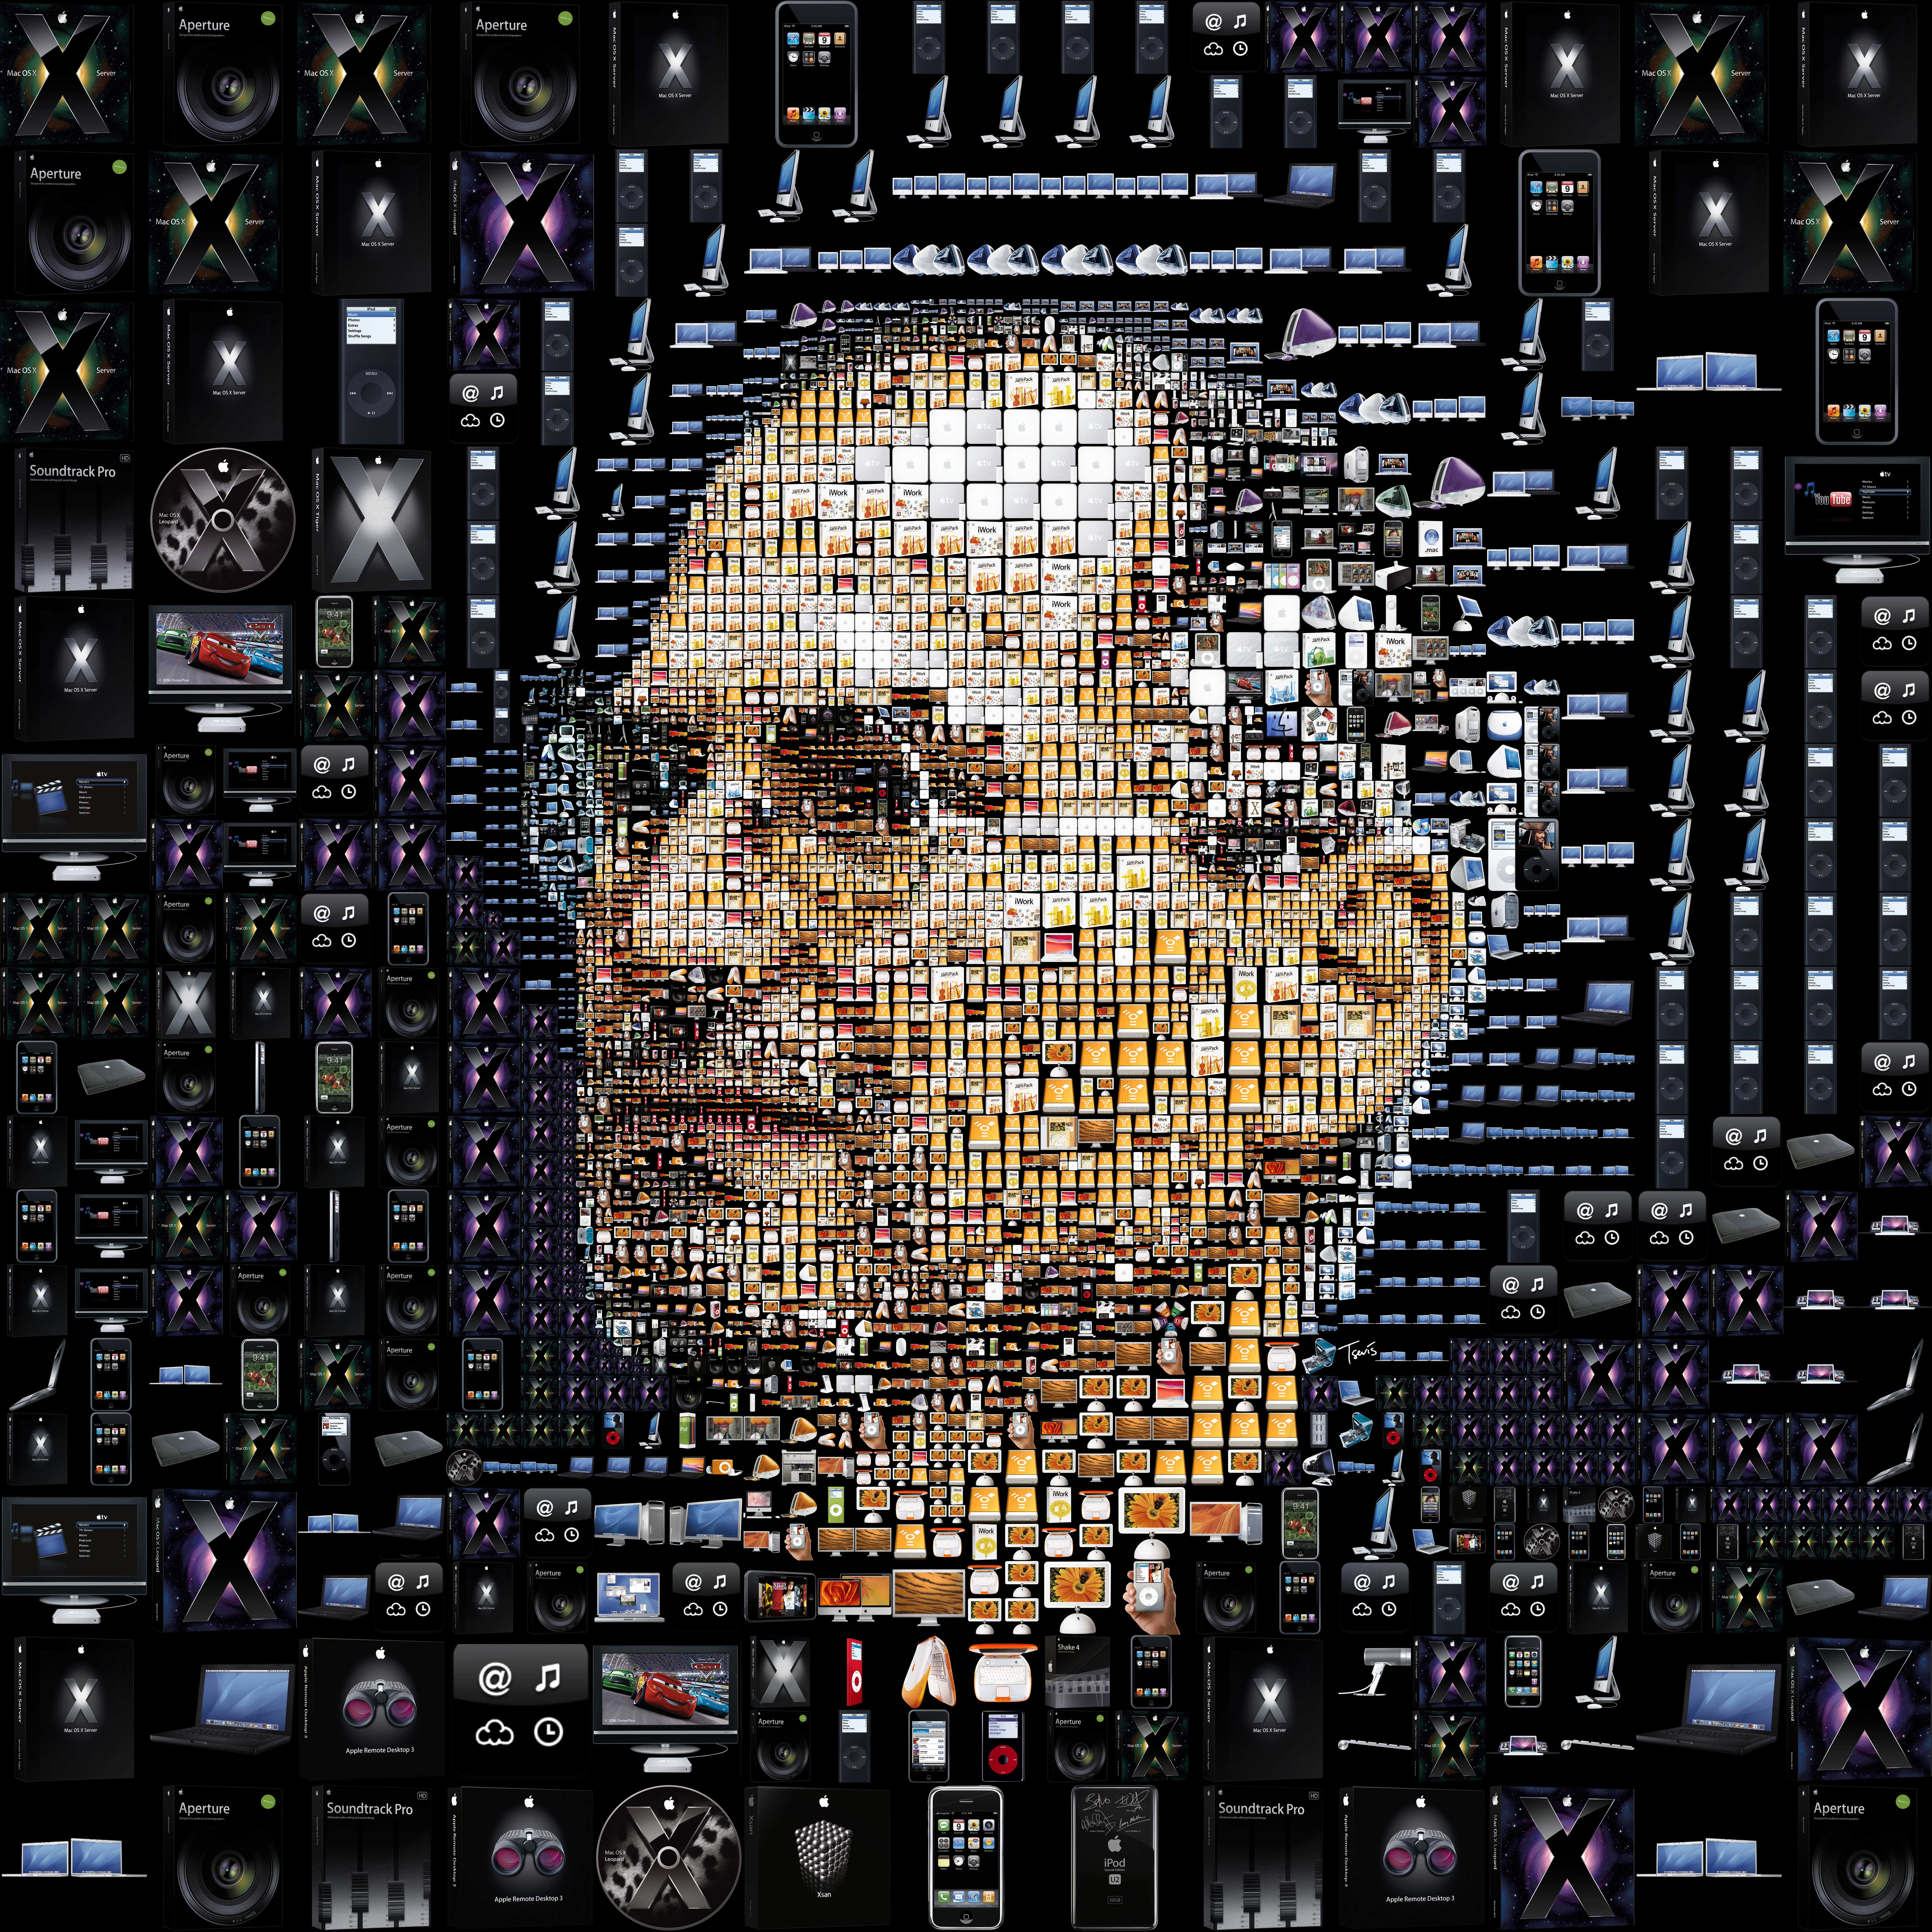 30c708b2a66 The trouble with Steve Jobs | Fortune